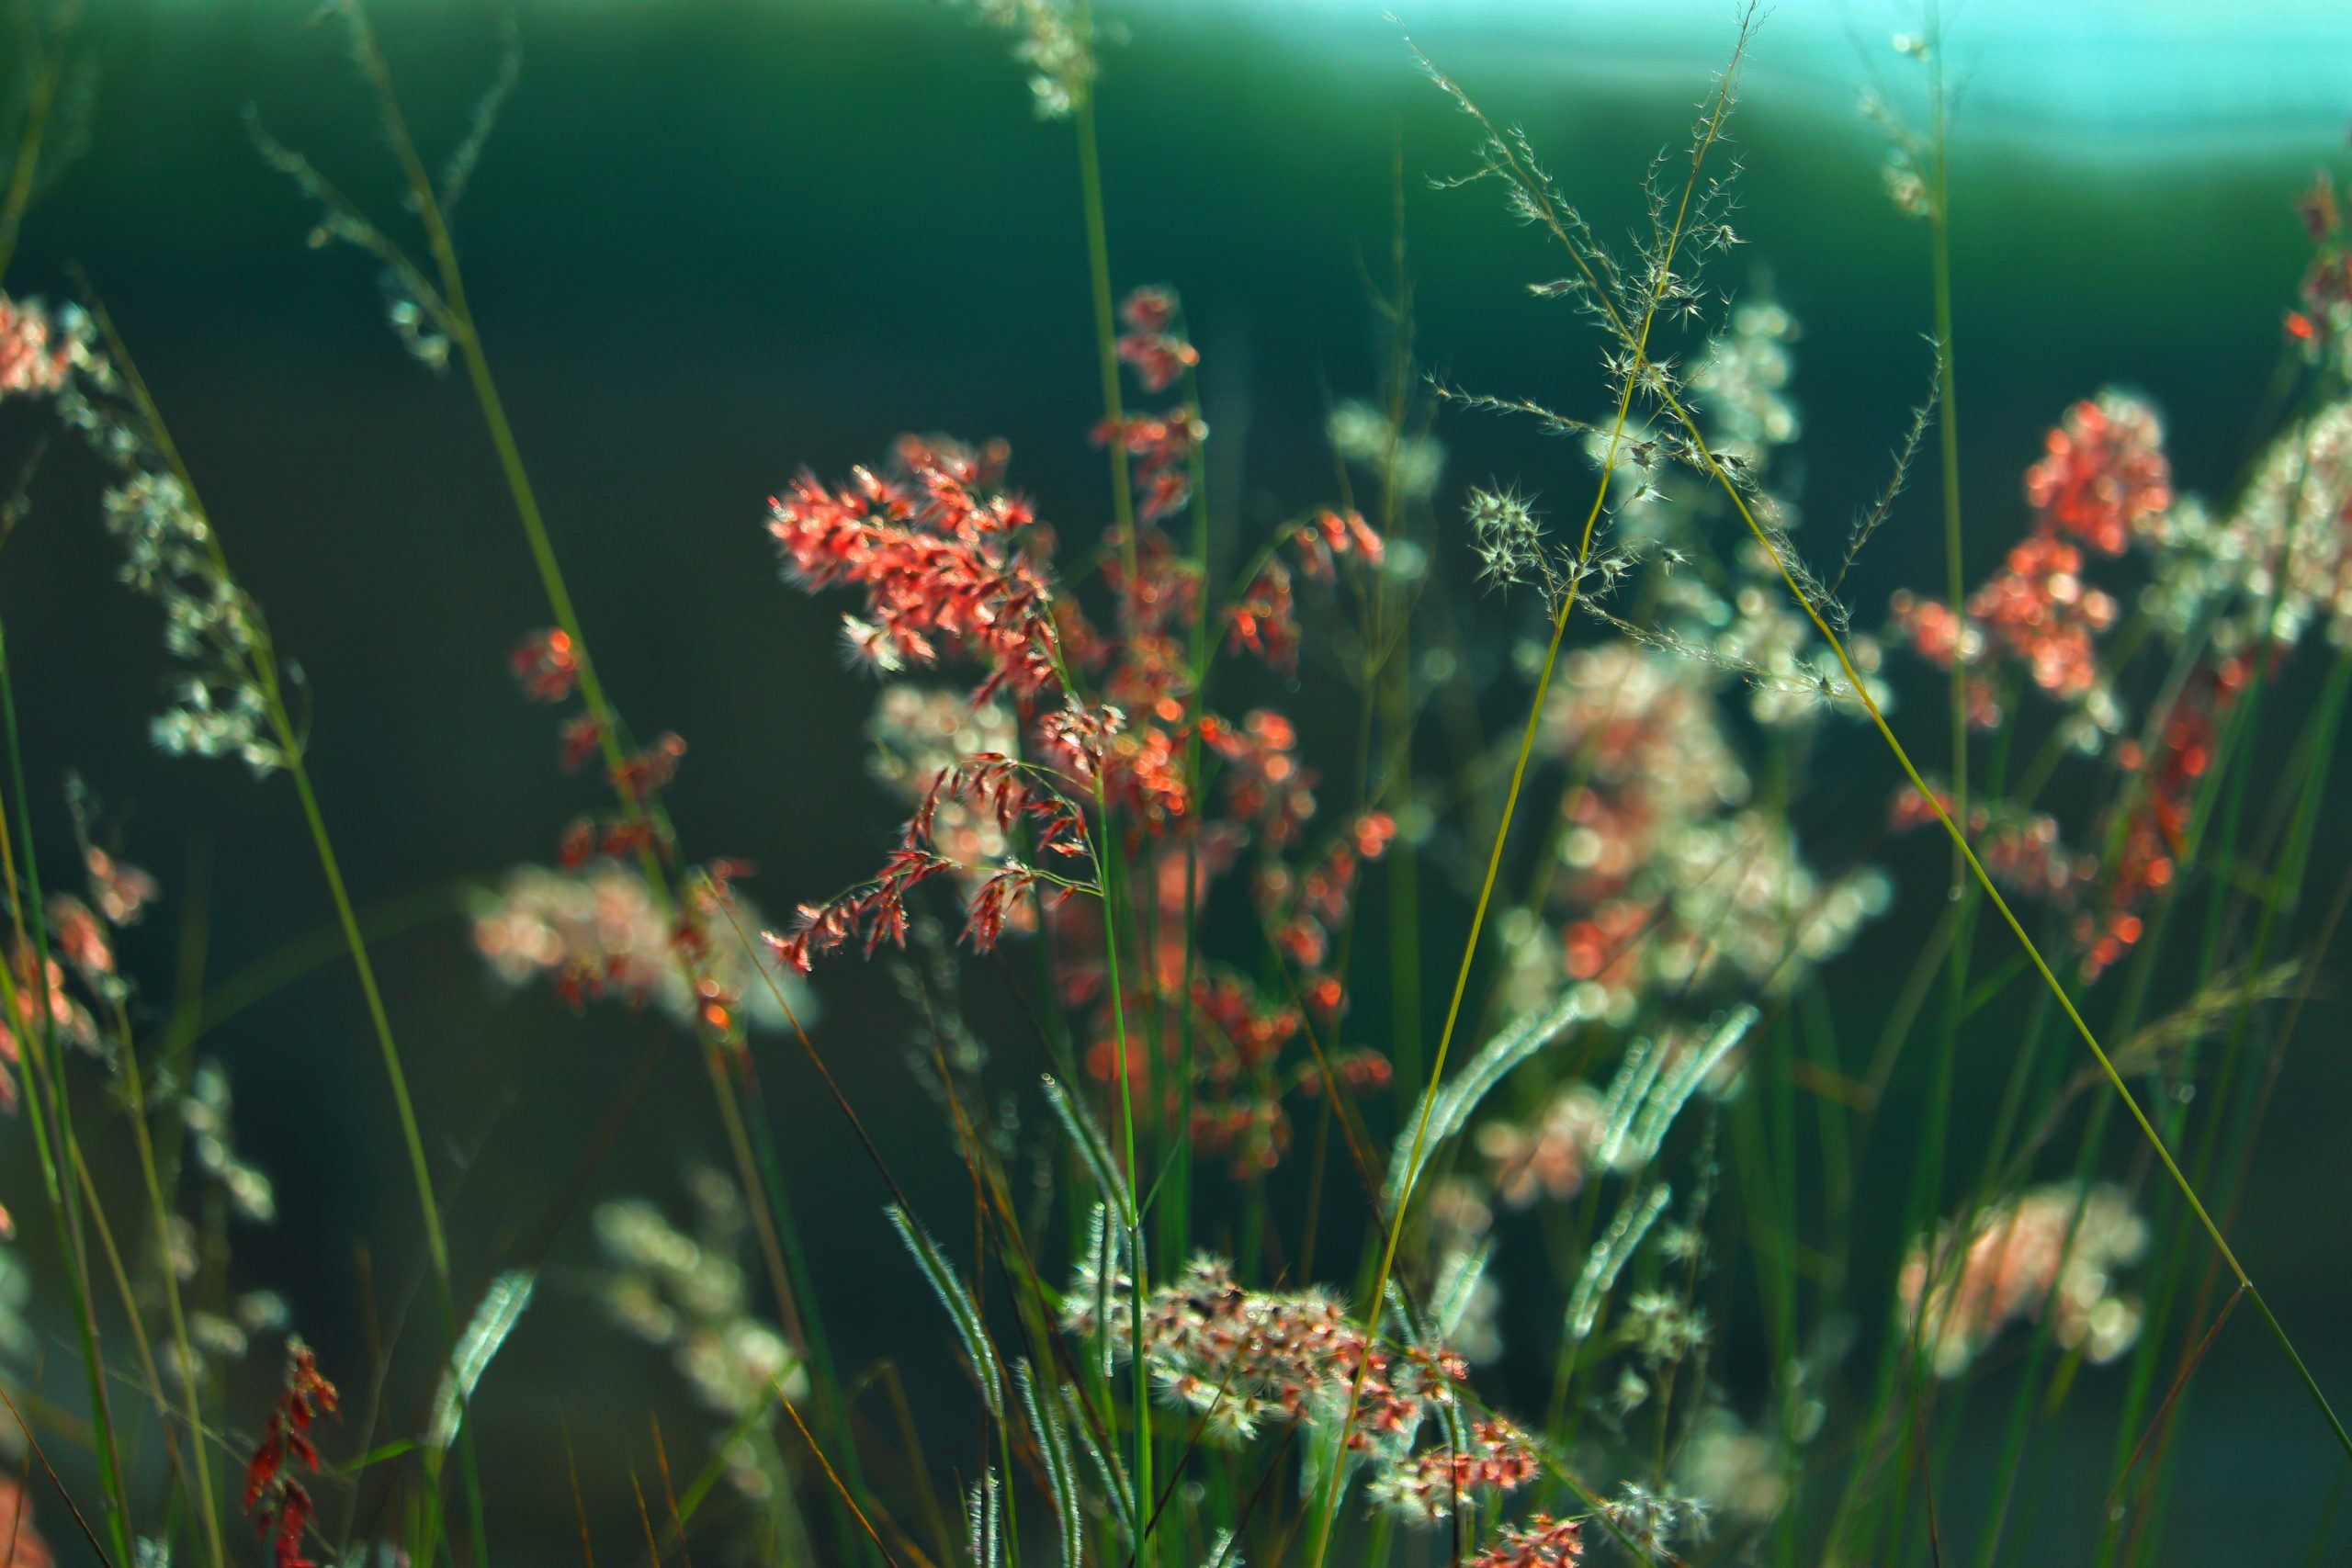 Grass and grassy flowers